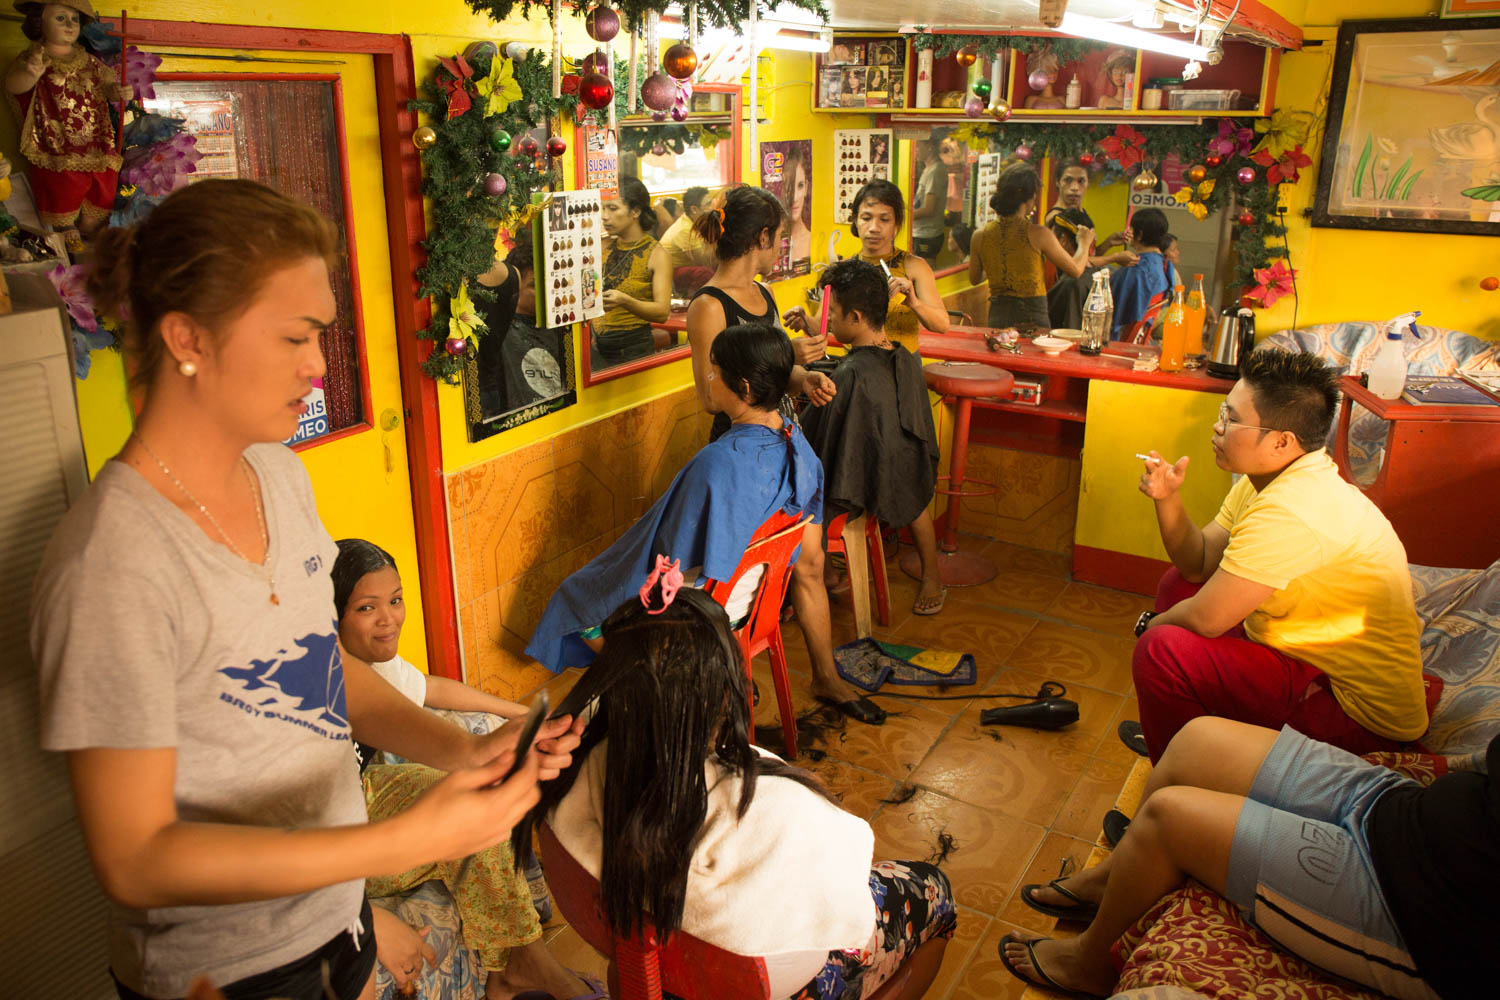 """Baseco is an informal neighborhood of Manila located between the international port and the Pasig river. More than 50 000 people are living there in very precarious conditions. The """"Montemayor Sisters"""" in their hair salon, located in the main avenue of Baseco. Manila, Philippines - 13/01/2016."""